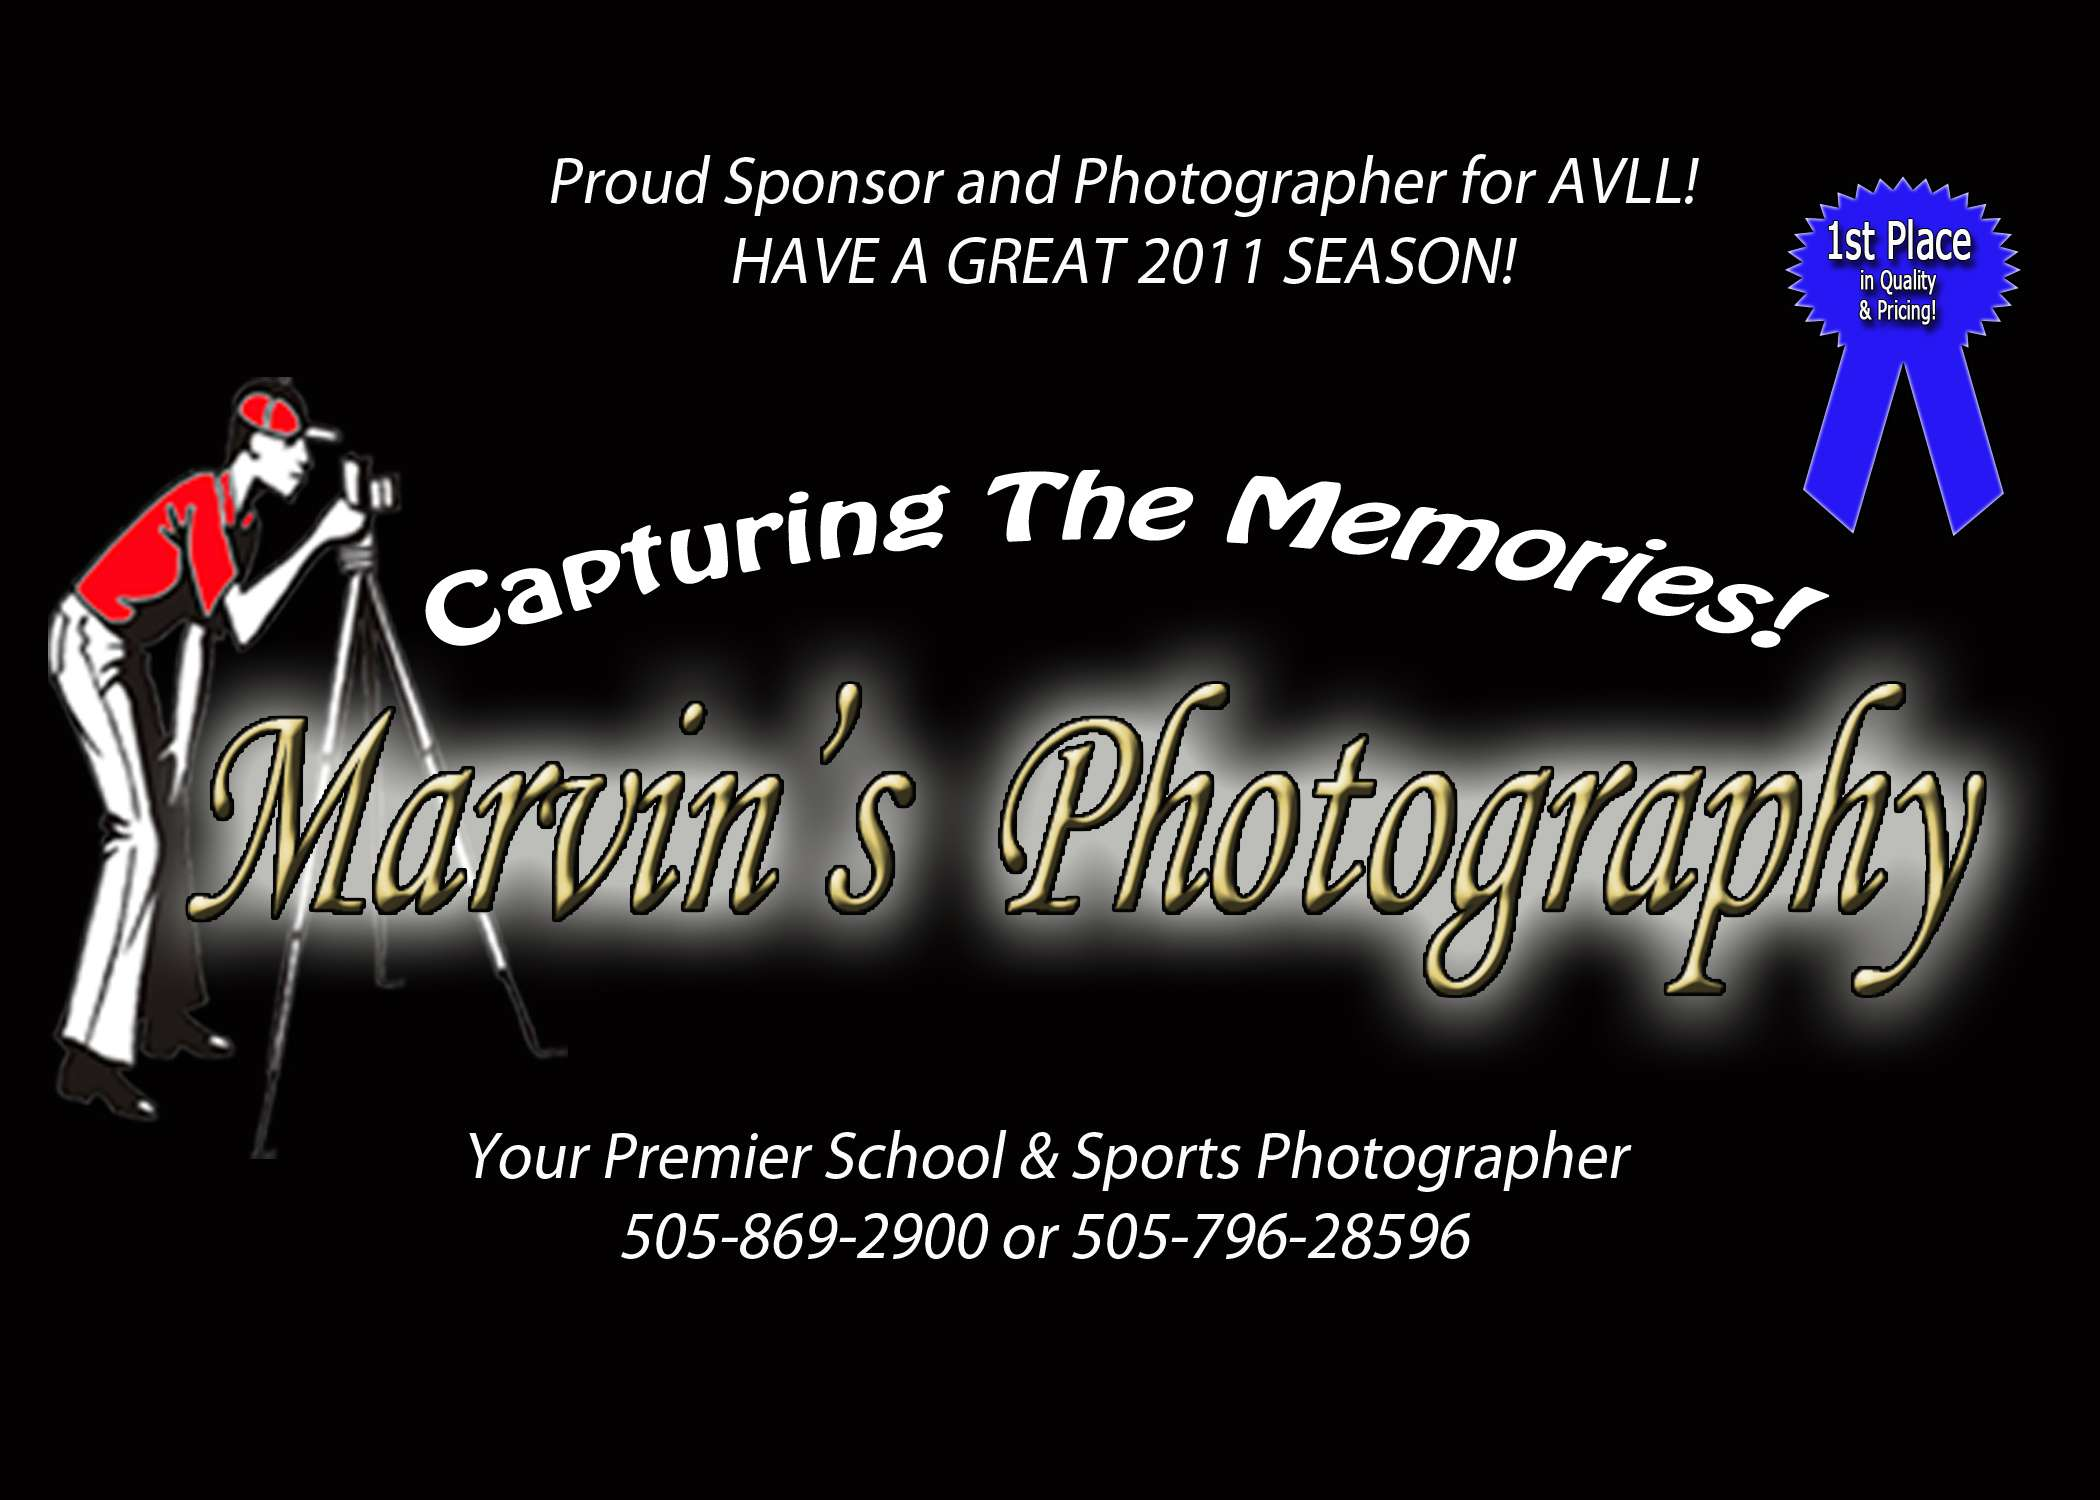 Marvin's Photography